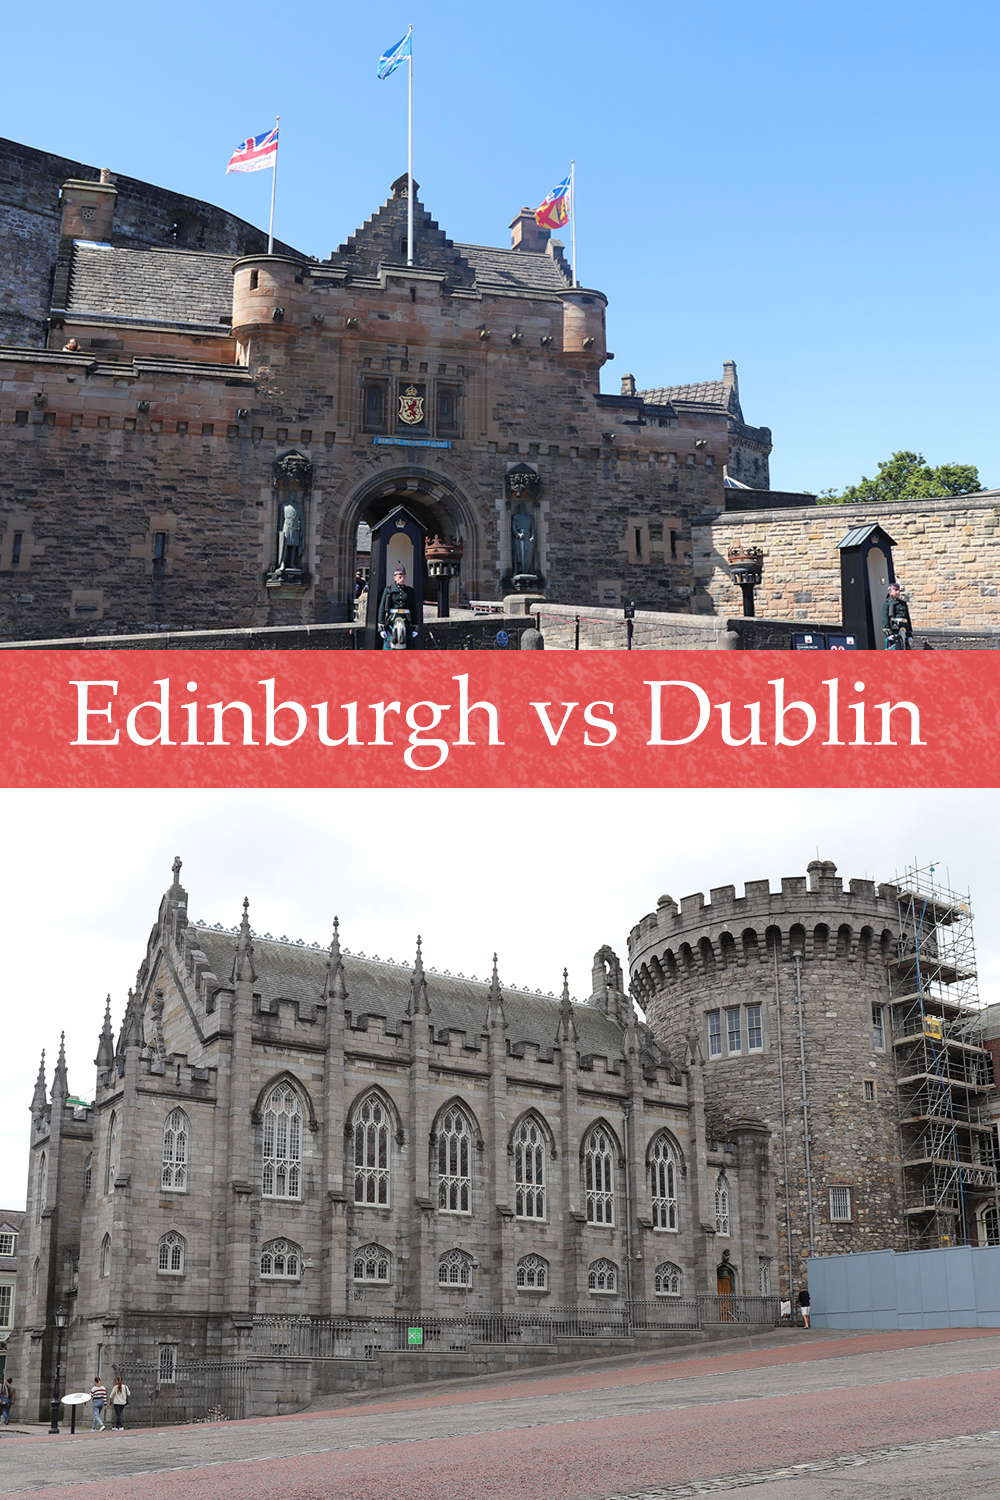 Edinburgh vs Dublin